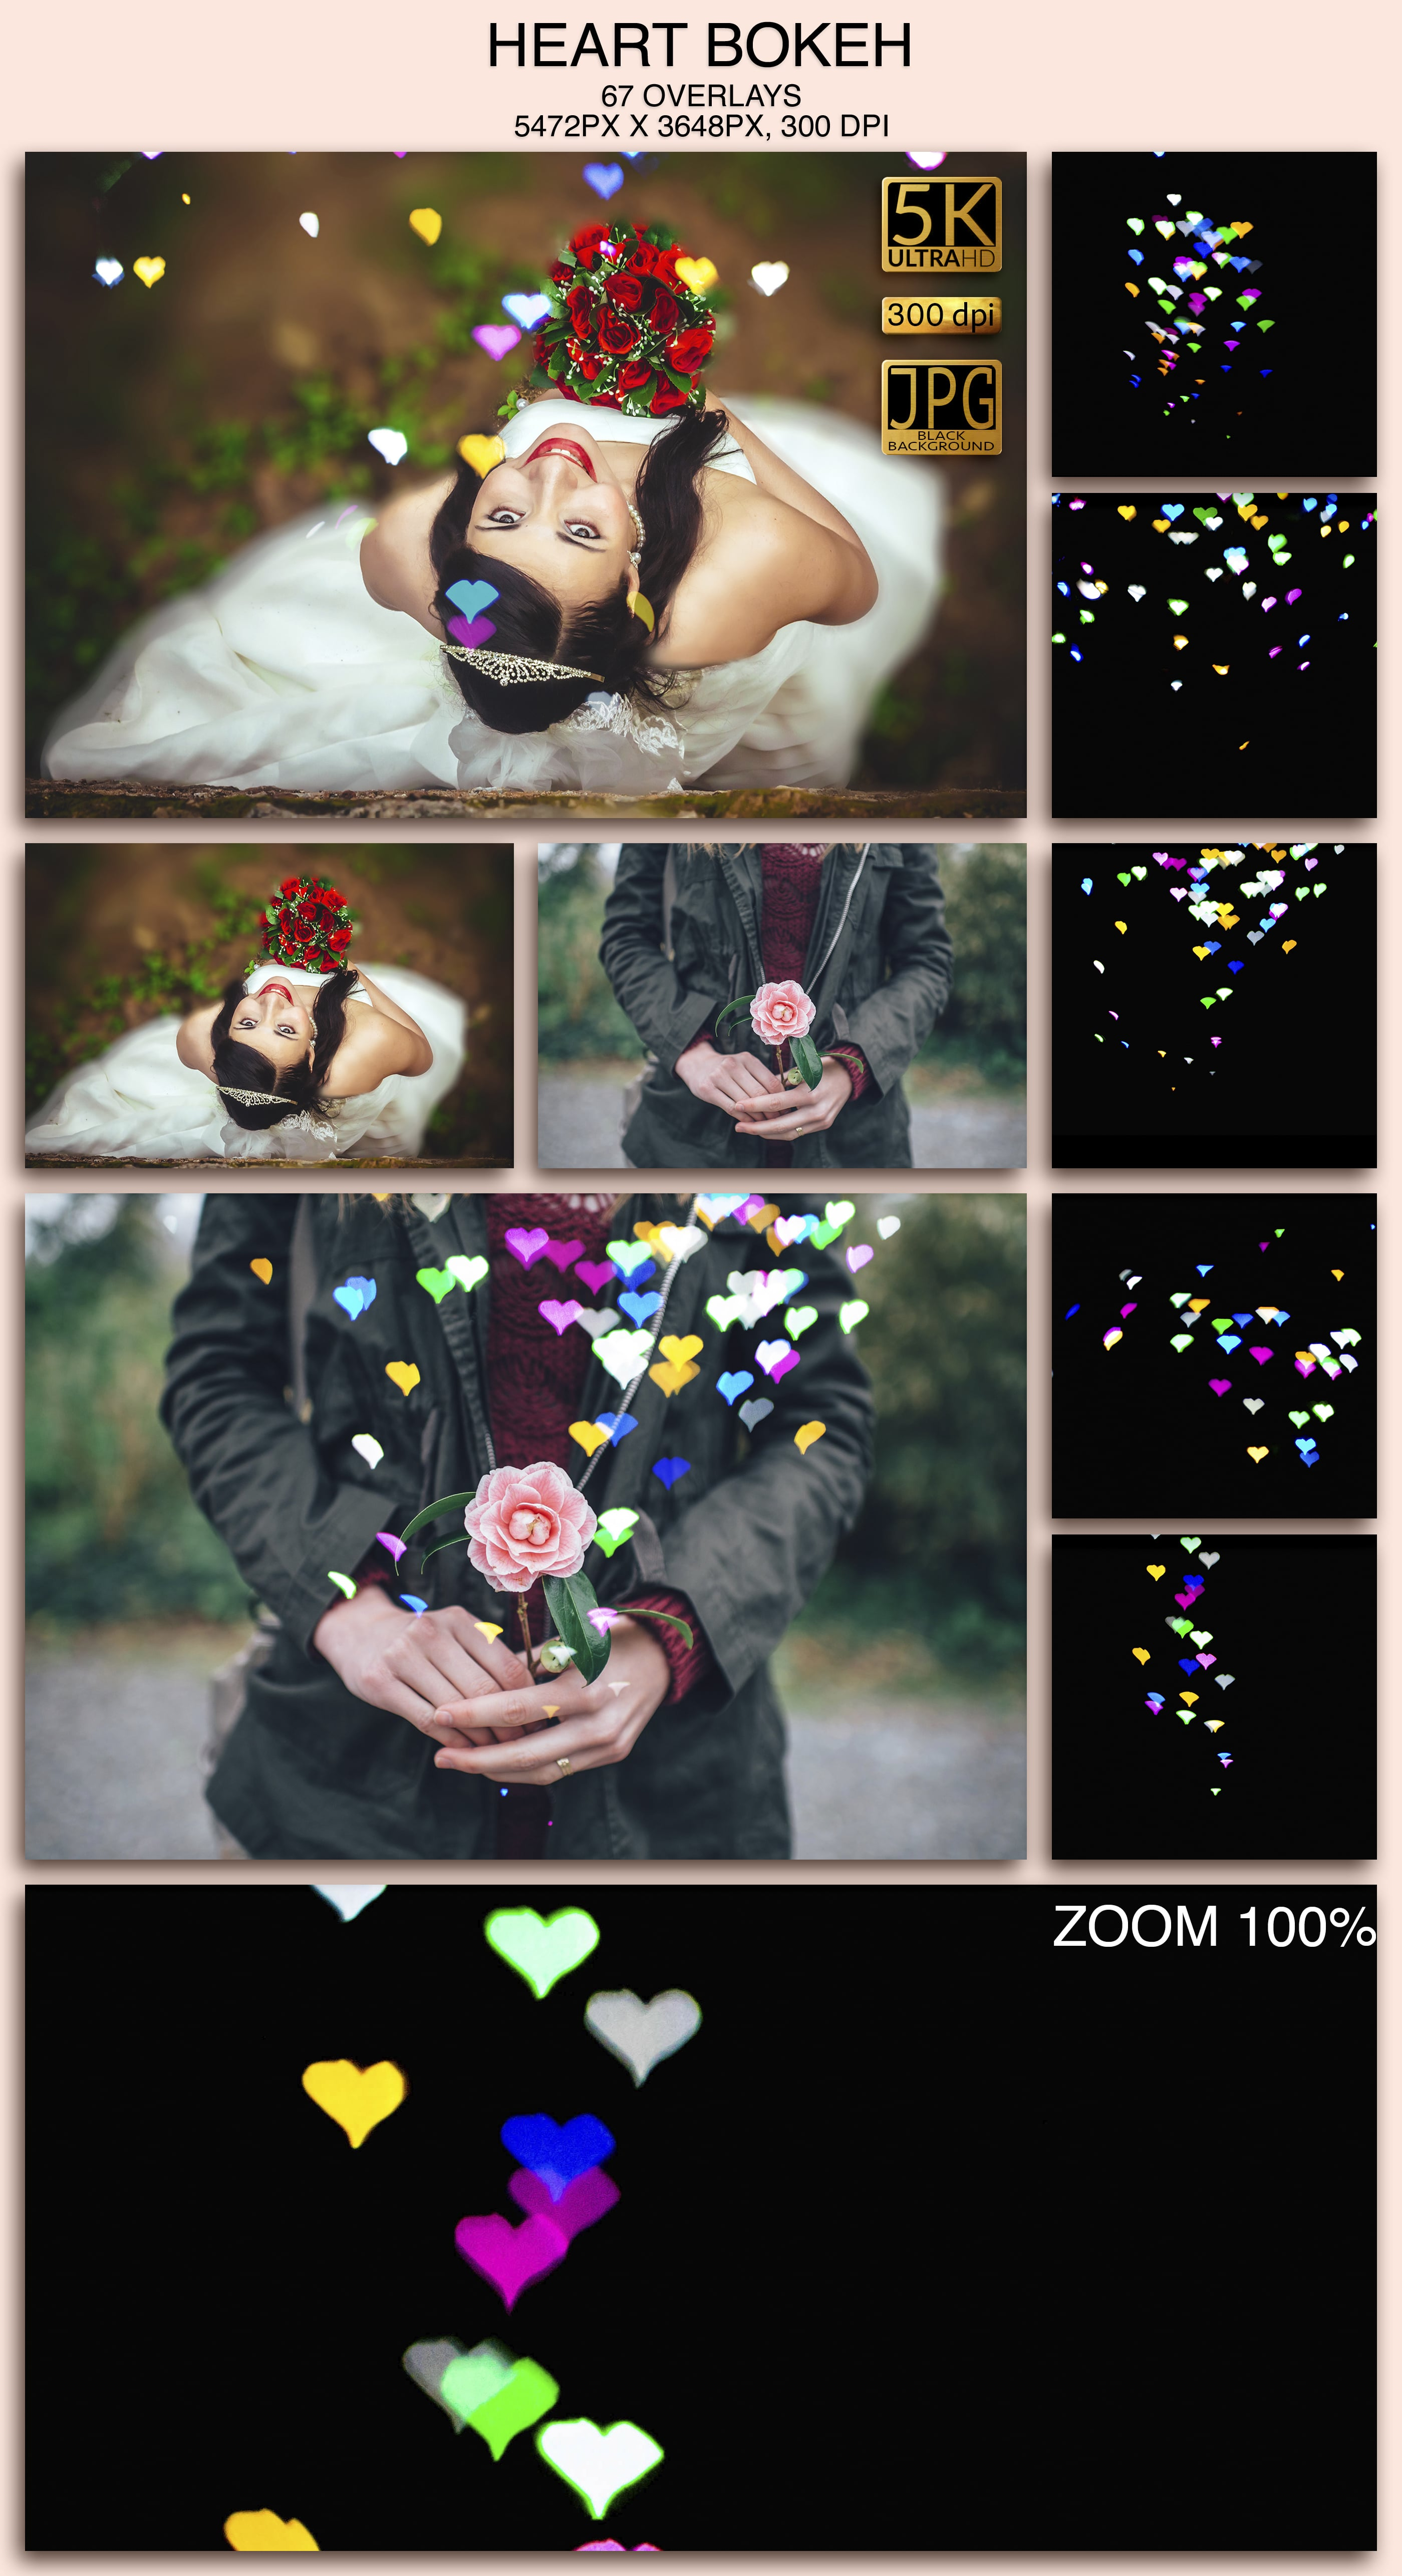 2006 Overlays Photoshop Bundle - HeartBokeh Preview